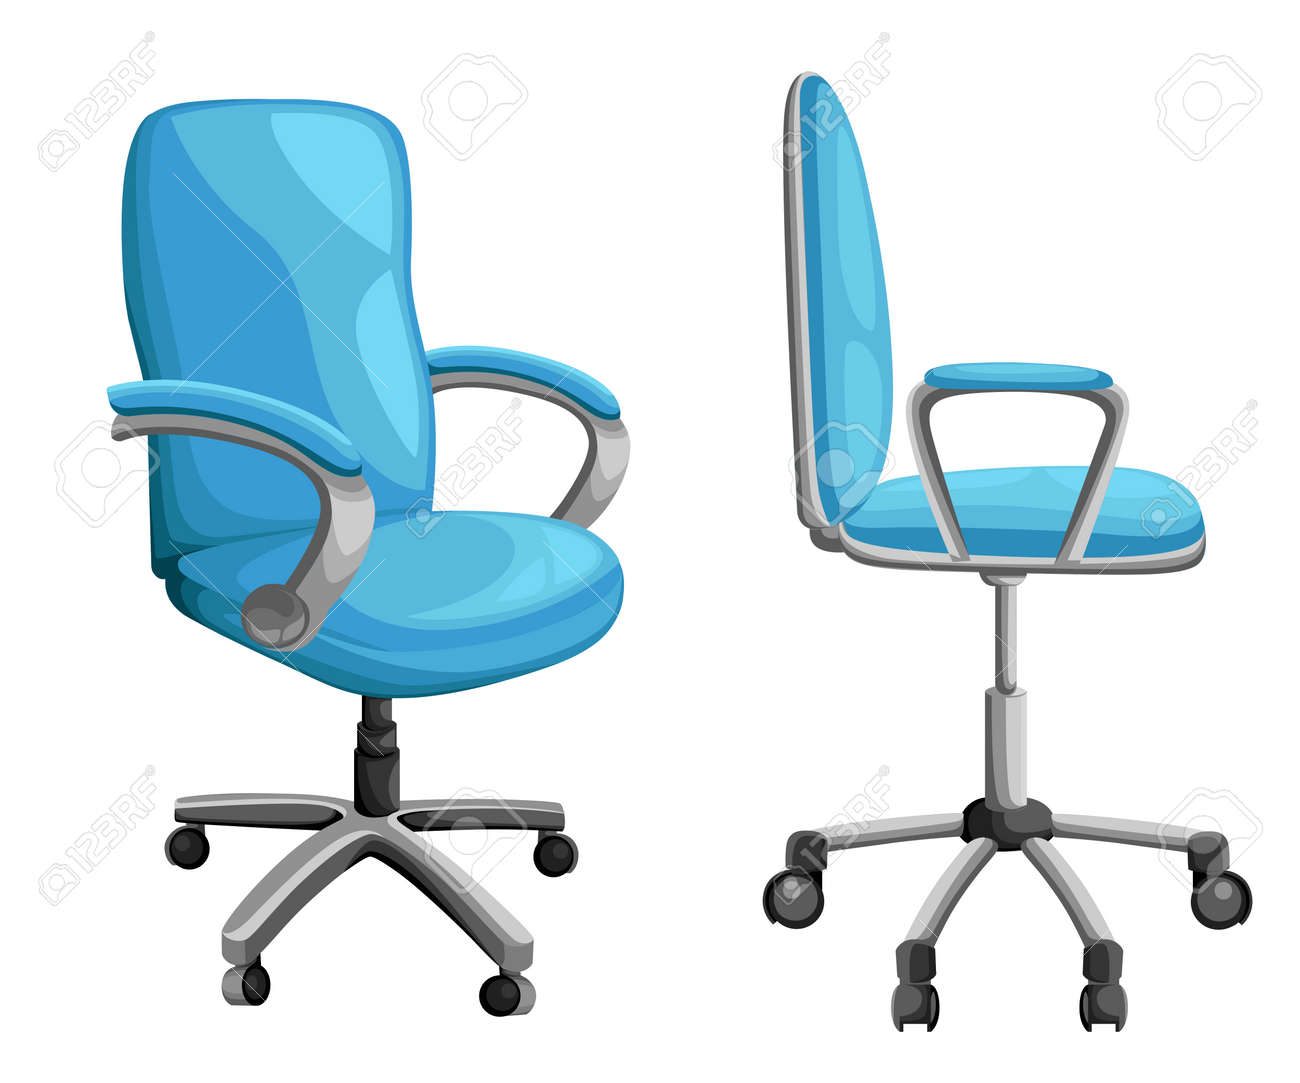 photo stock vector office or desk chair in various points of view armchair or stool in front back side angles